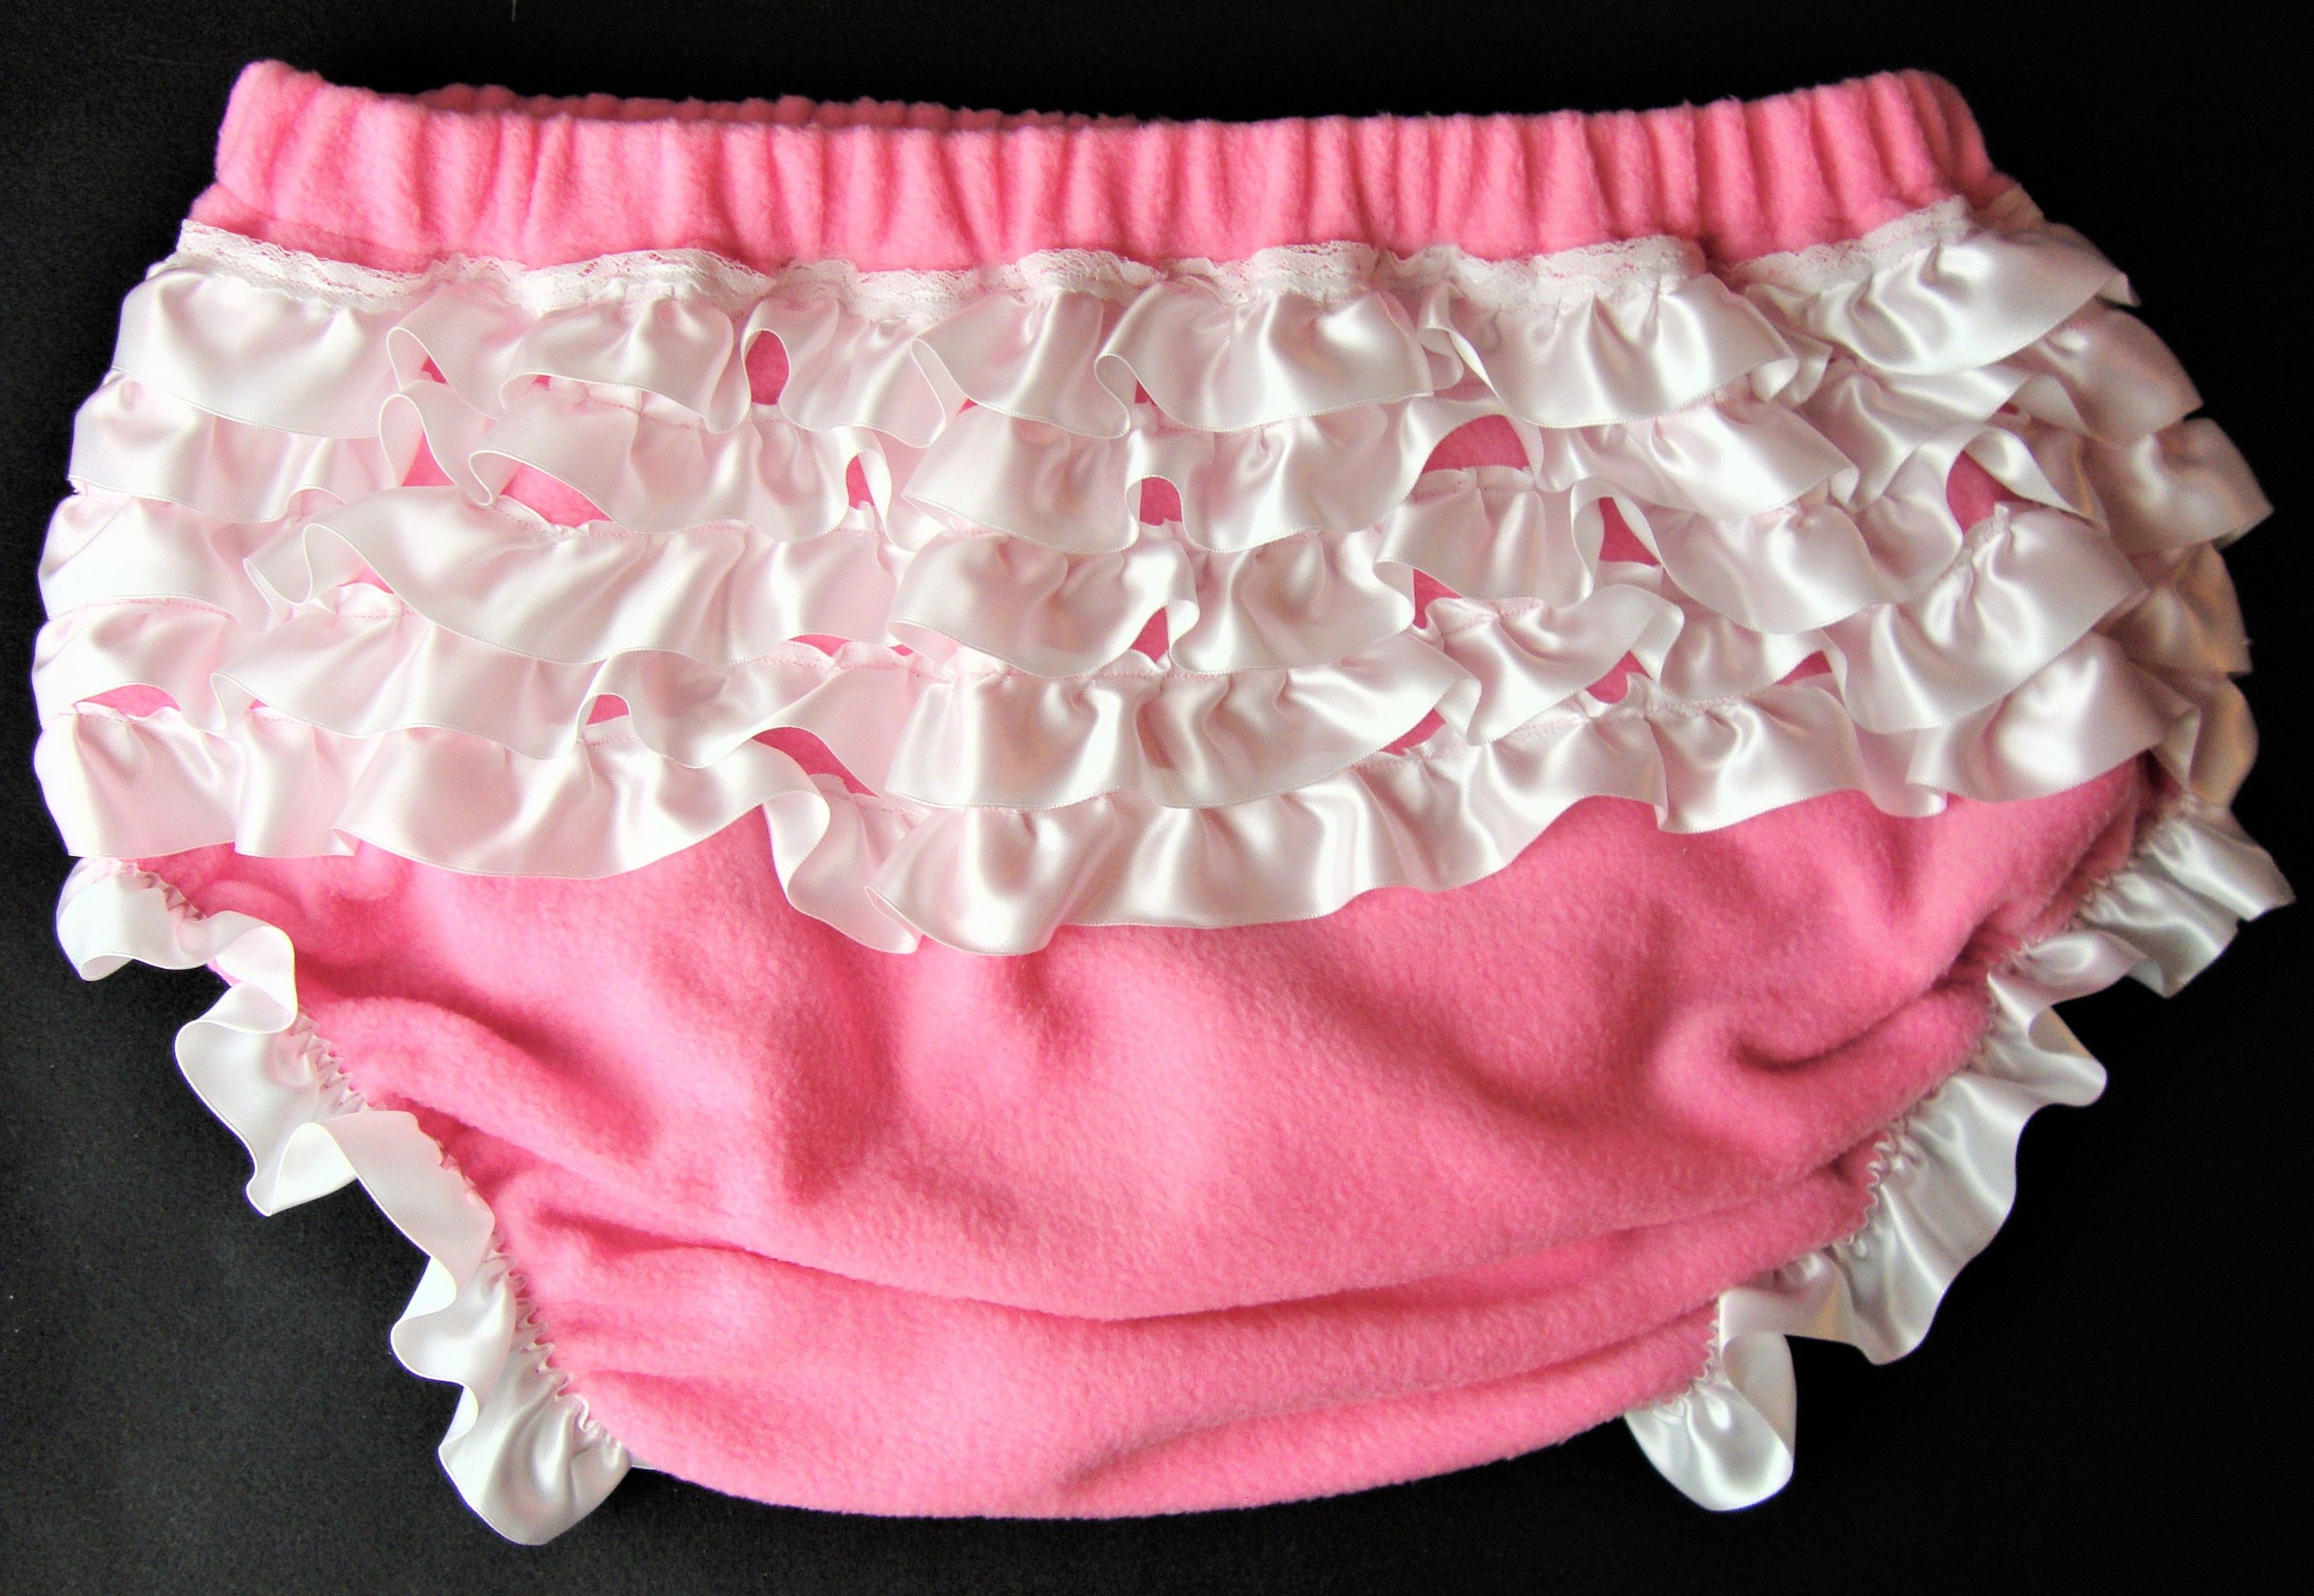 ed74d33c5 Mommy Red's adult baby ruffle butt diaper cover | diaper covers ...